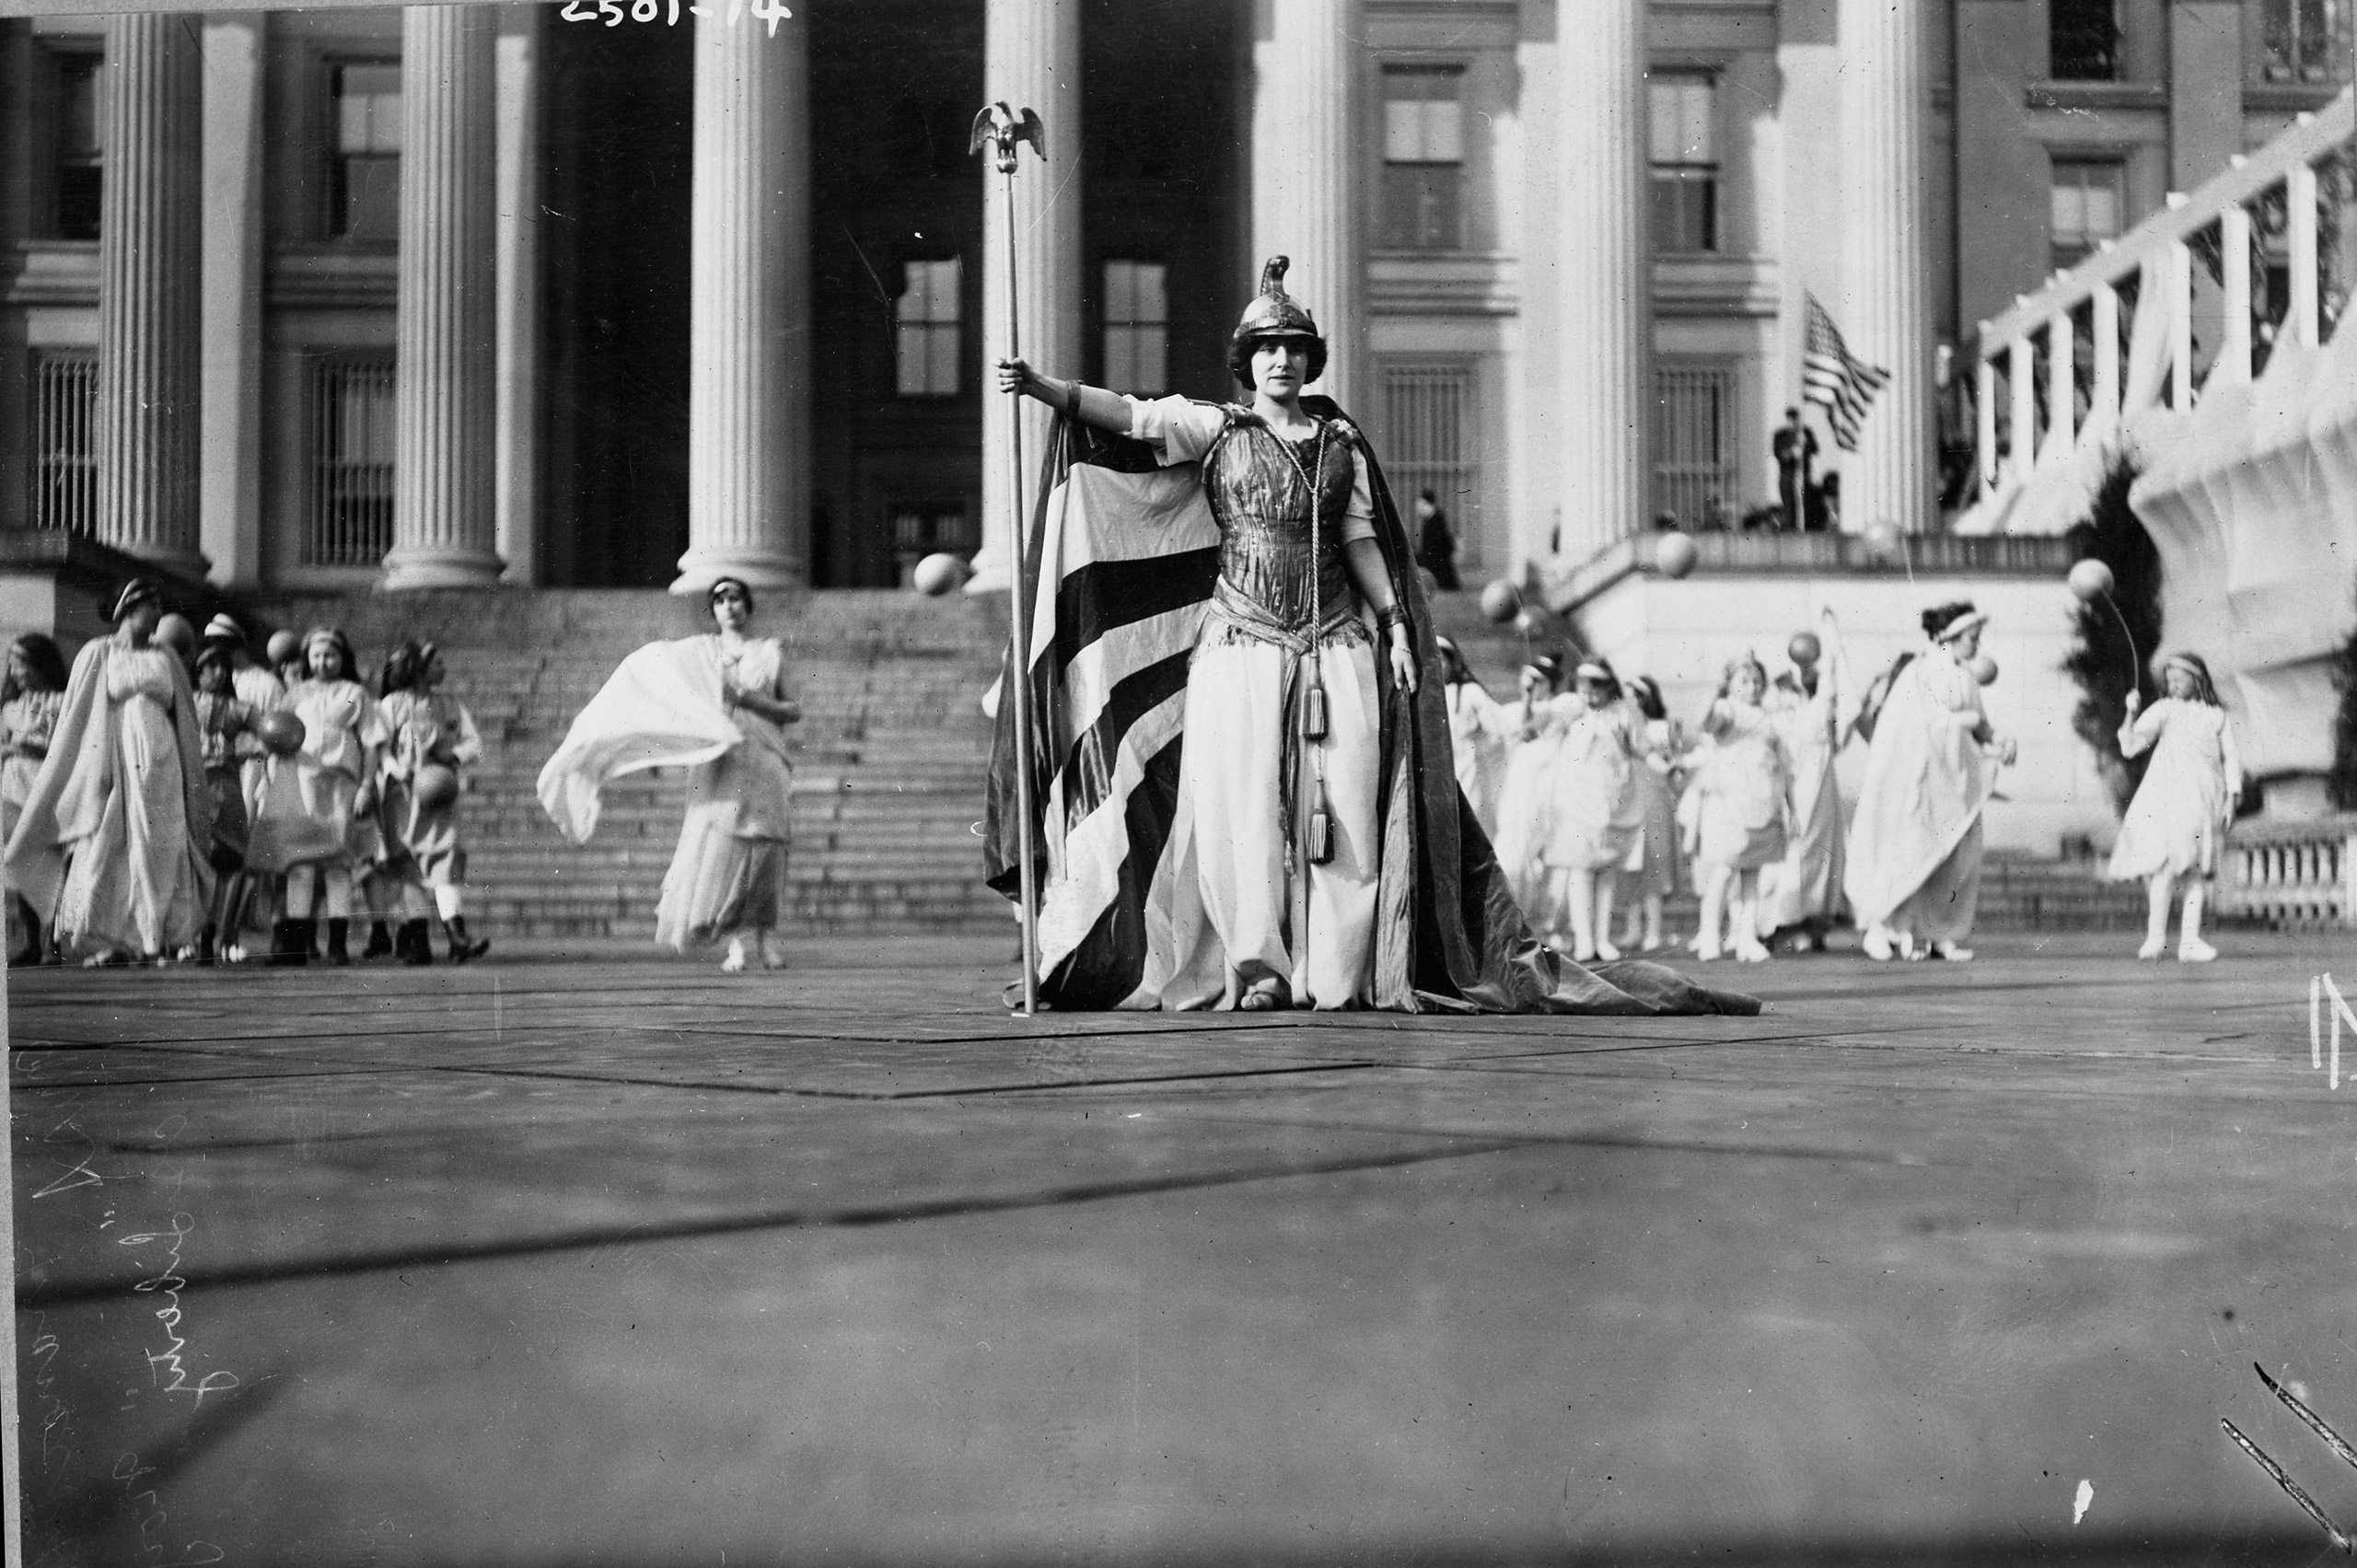 Hedwig Reicher as Columbia at the Mar. 3, 1913 Suffrage Parade in Washington, D.C.